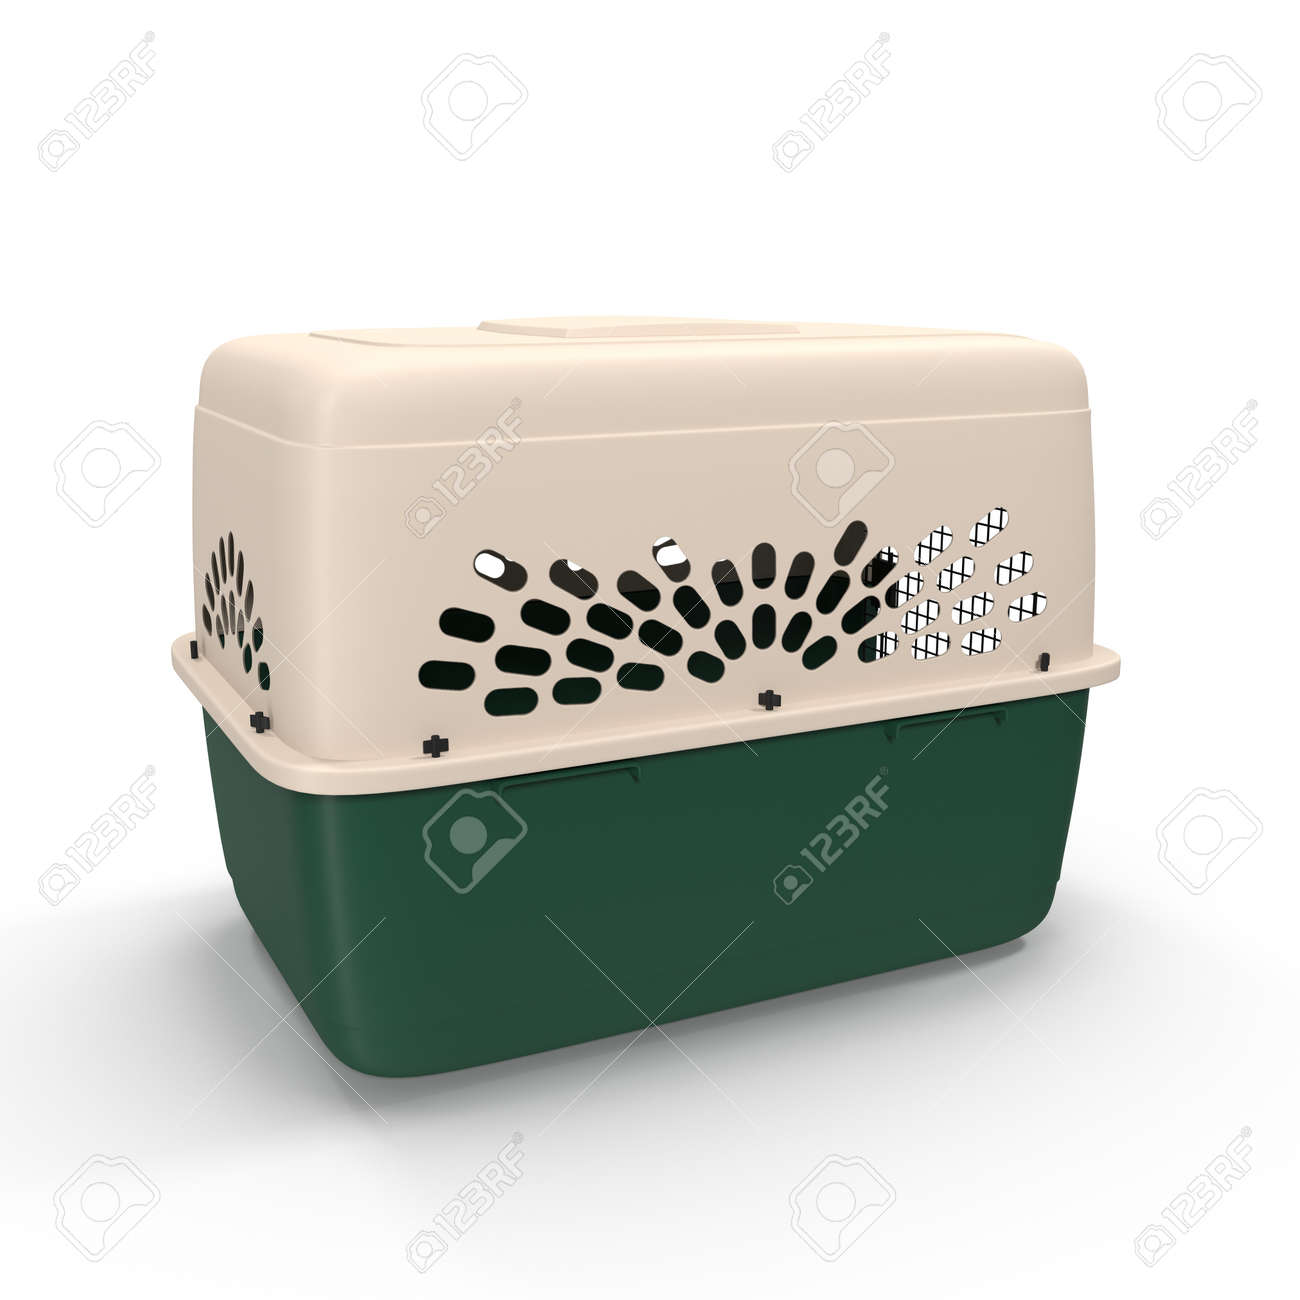 3d model of pet carrier isolated on a white background